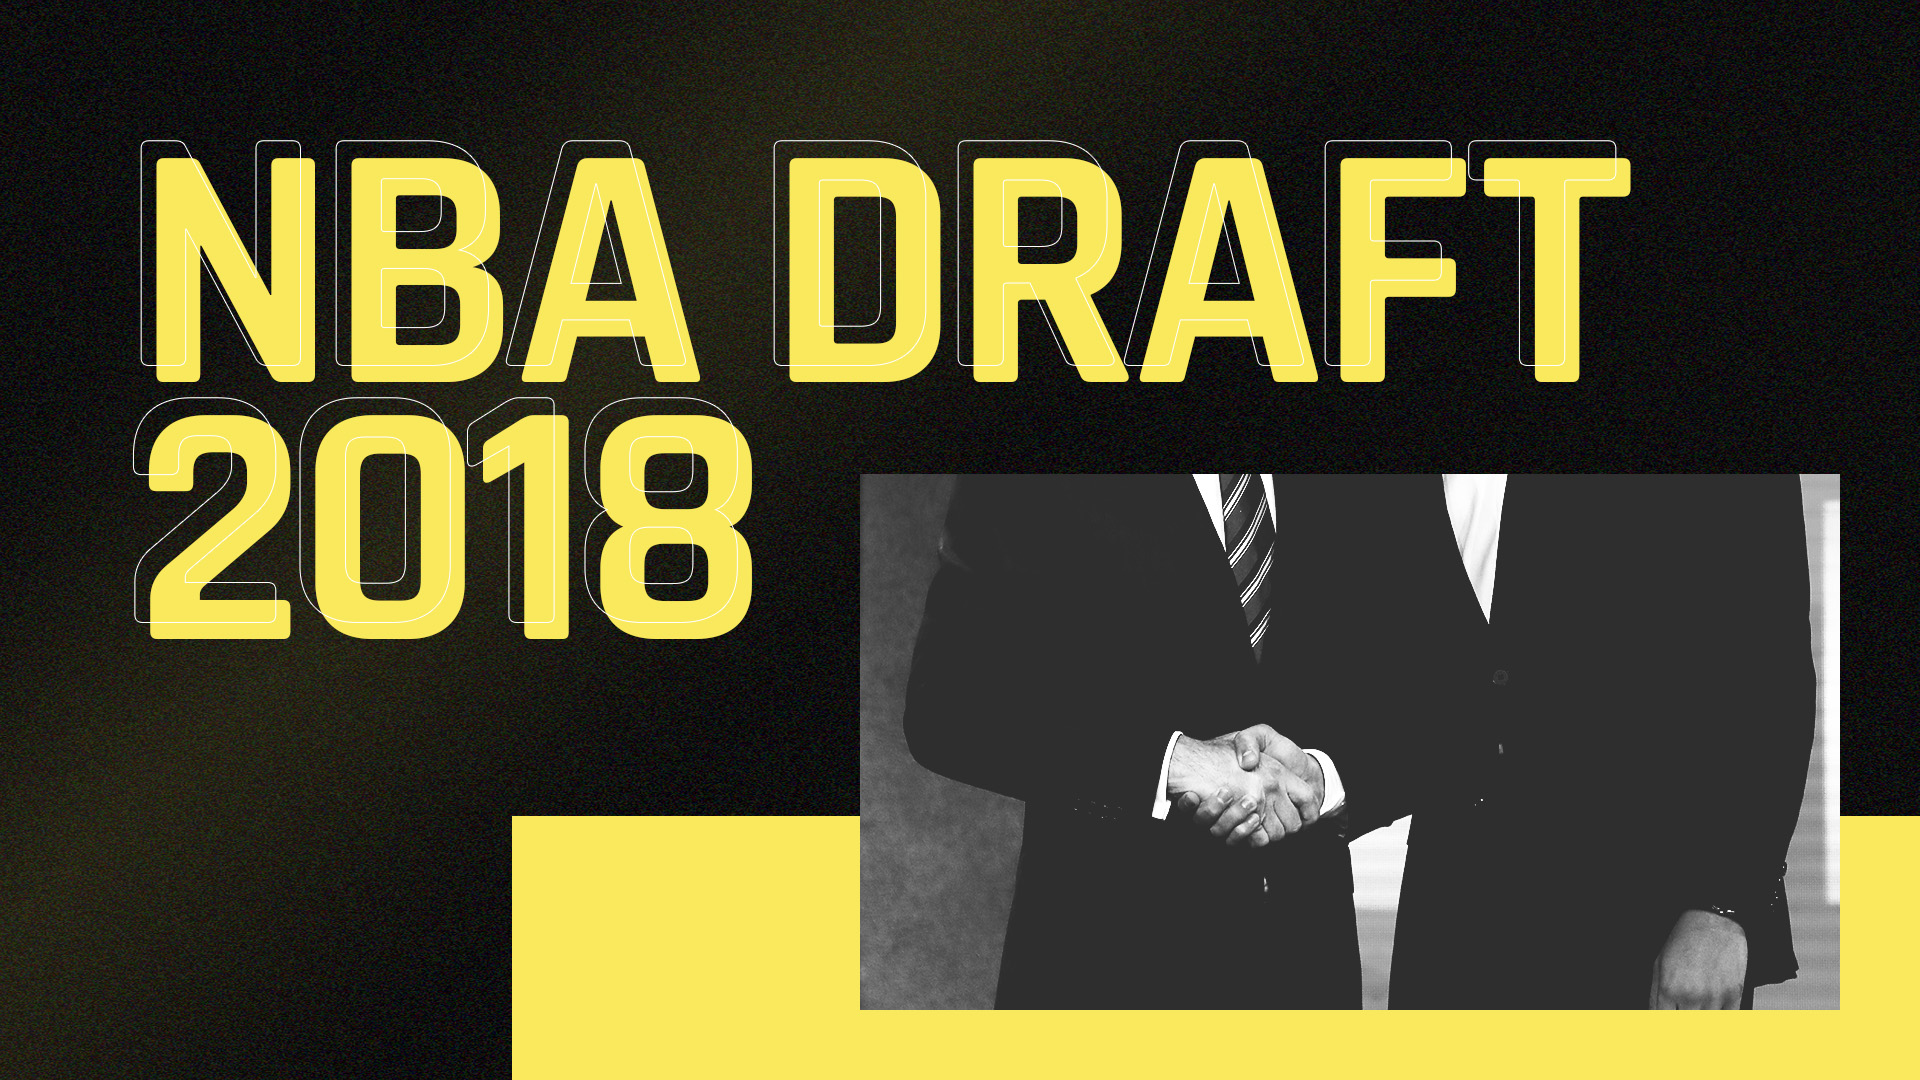 NBA Draft 2018 live results